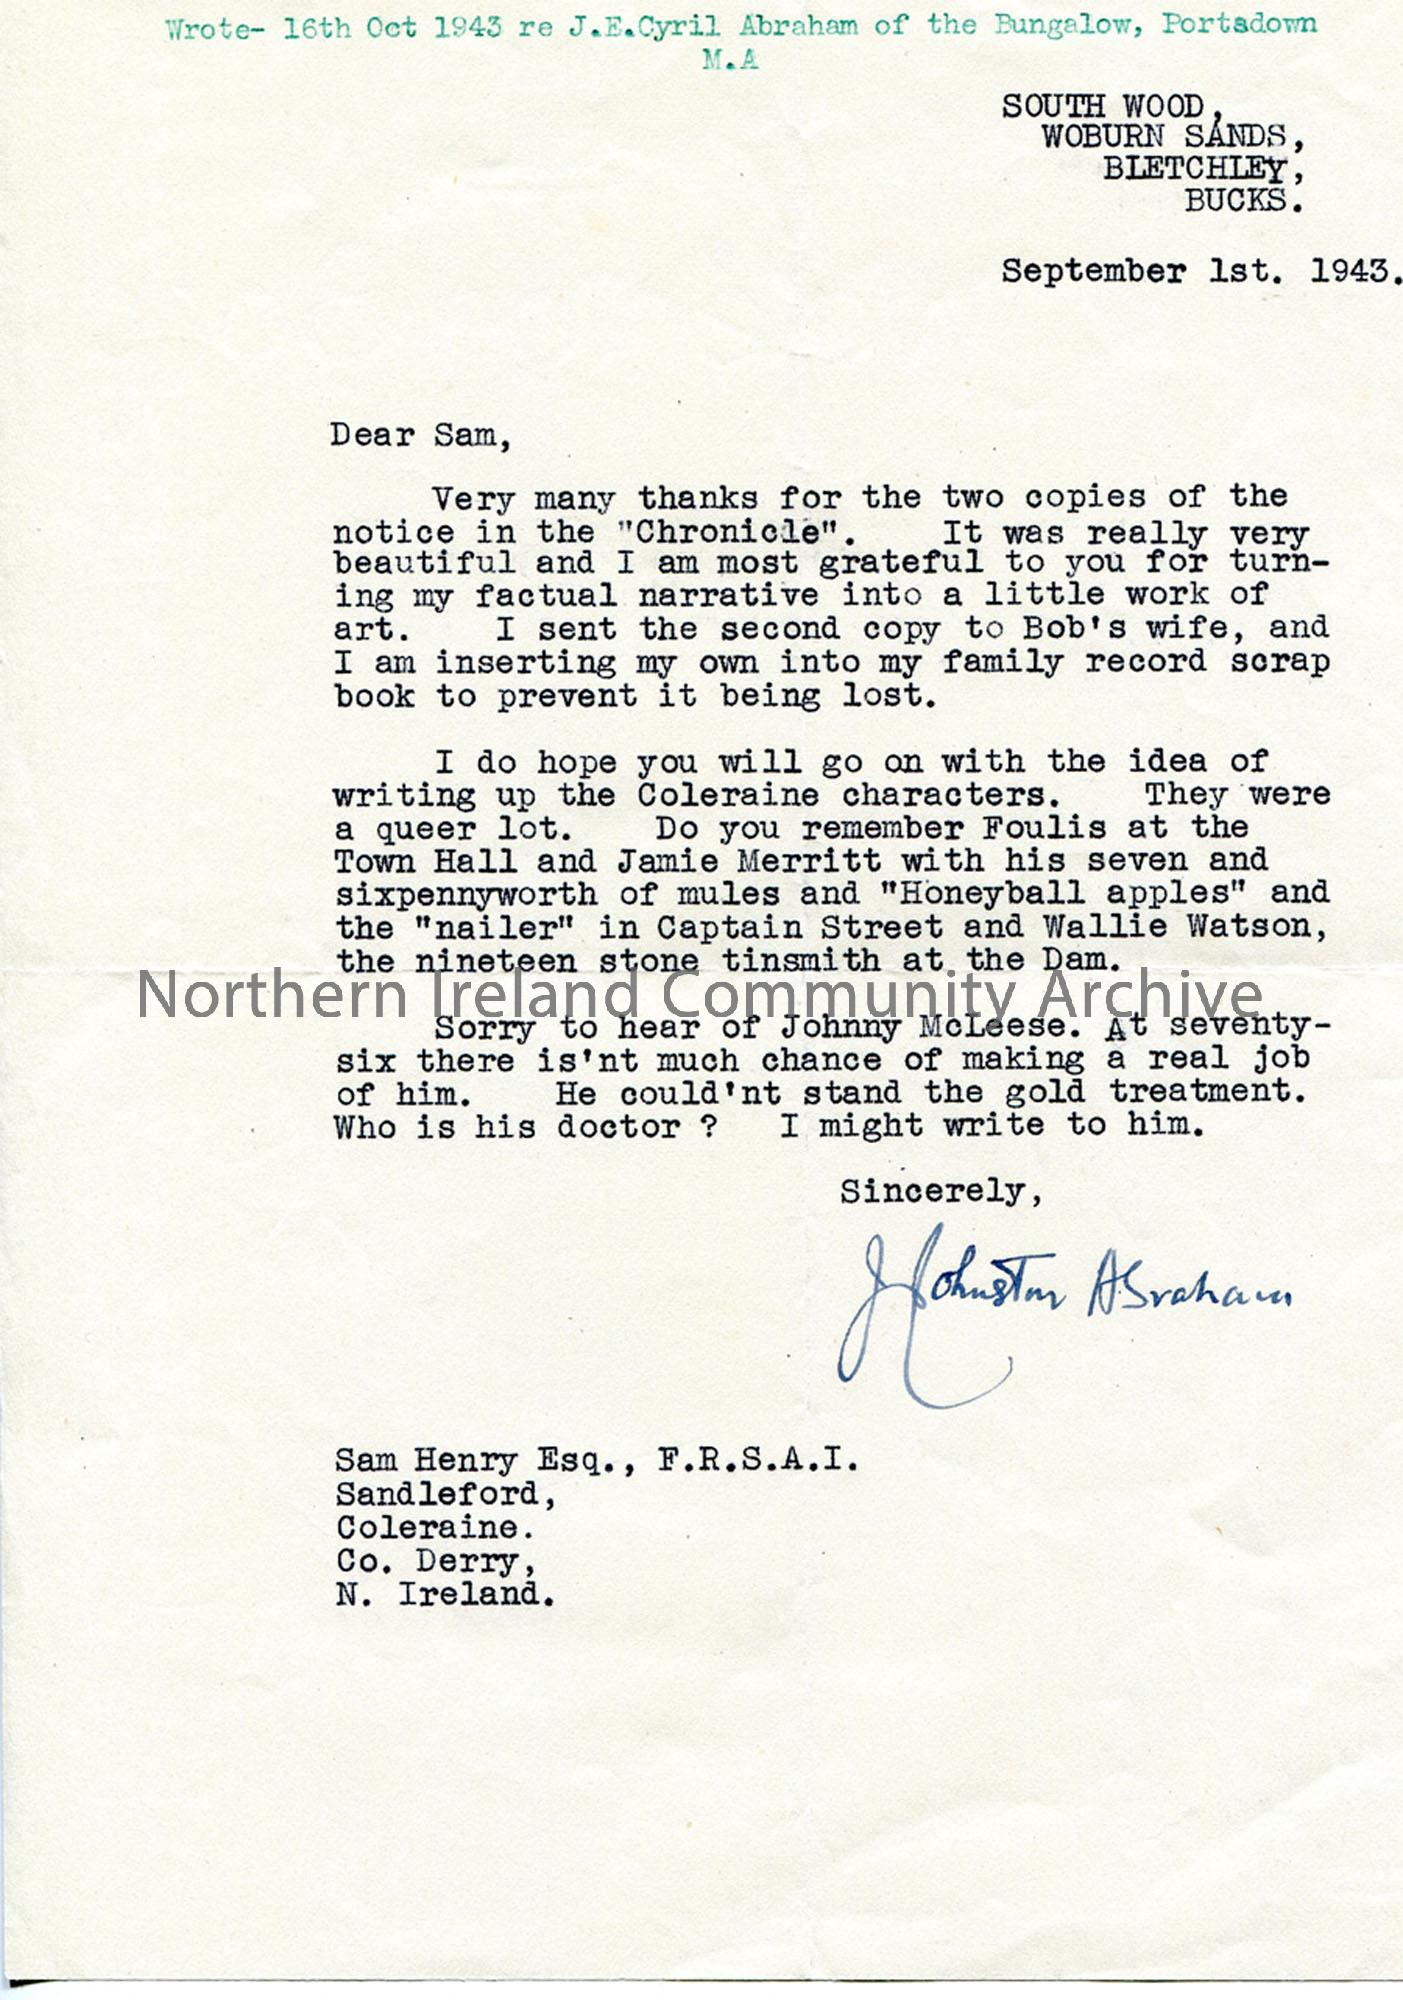 Letter from James Johnston Abraham 1.9.1943